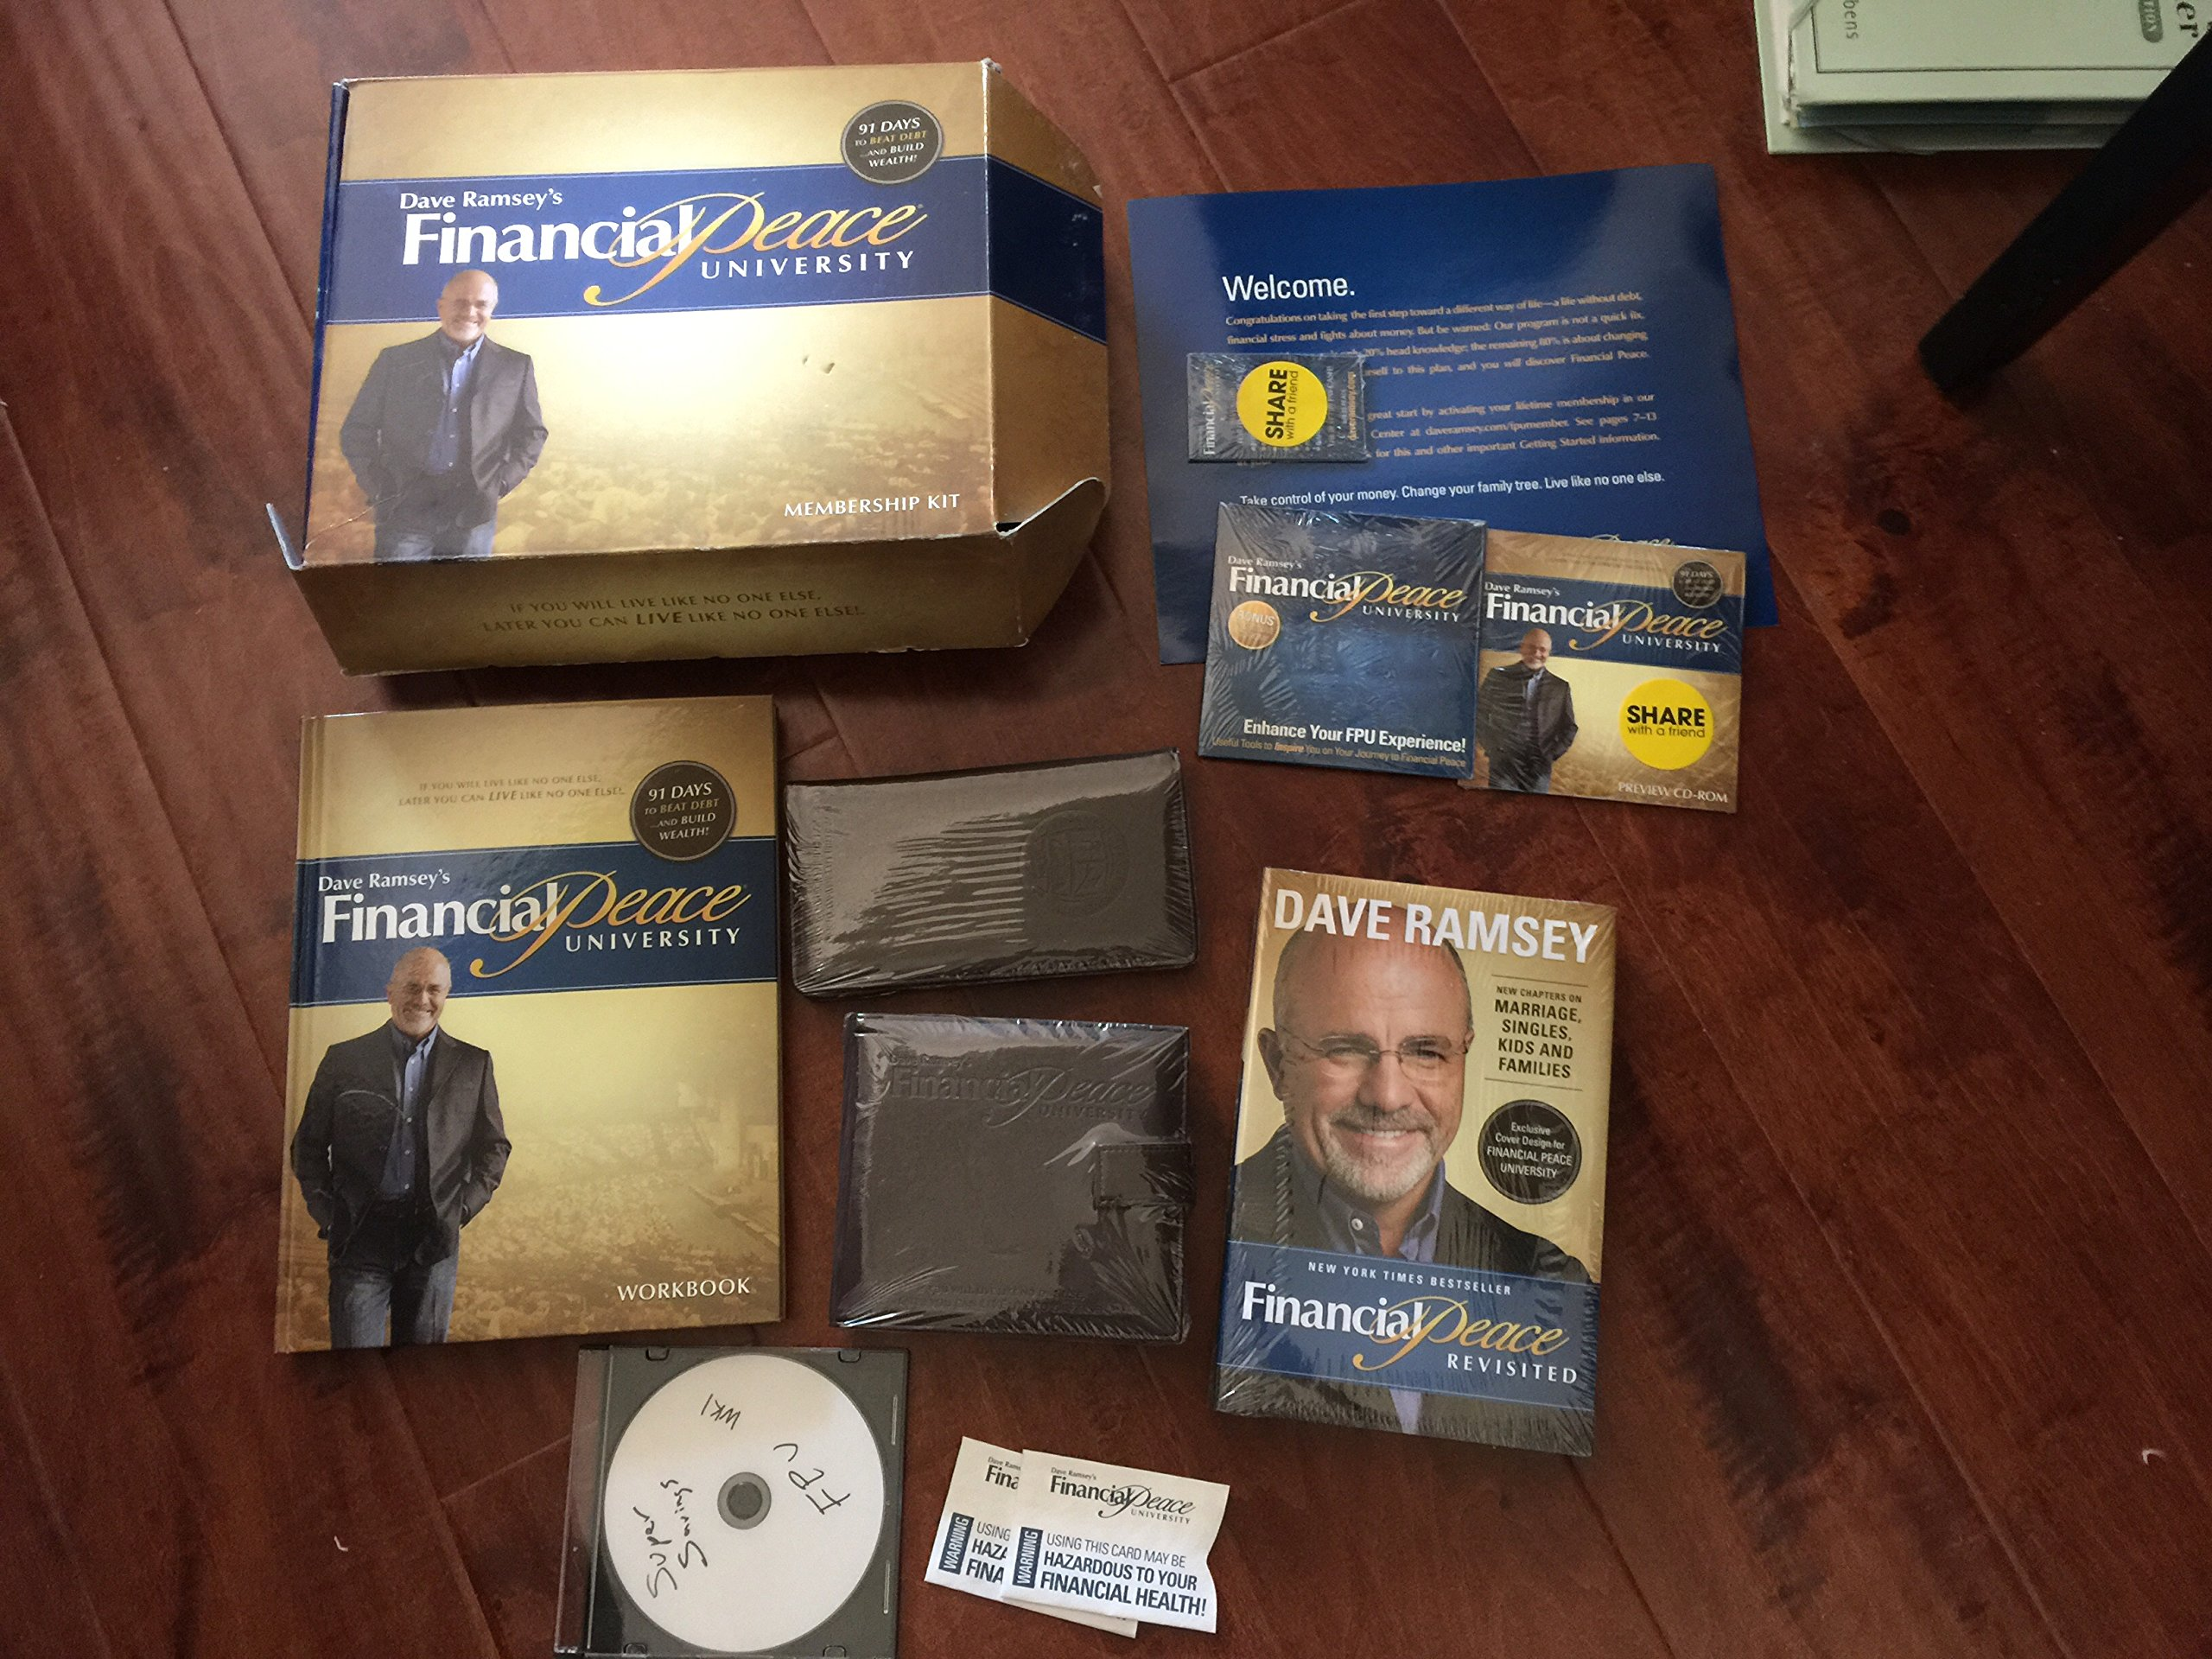 Worksheets Dave Ramsey Financial Peace Worksheets dave ramseys financial peace university membership kit ramsey 9781934629109 amazon com books